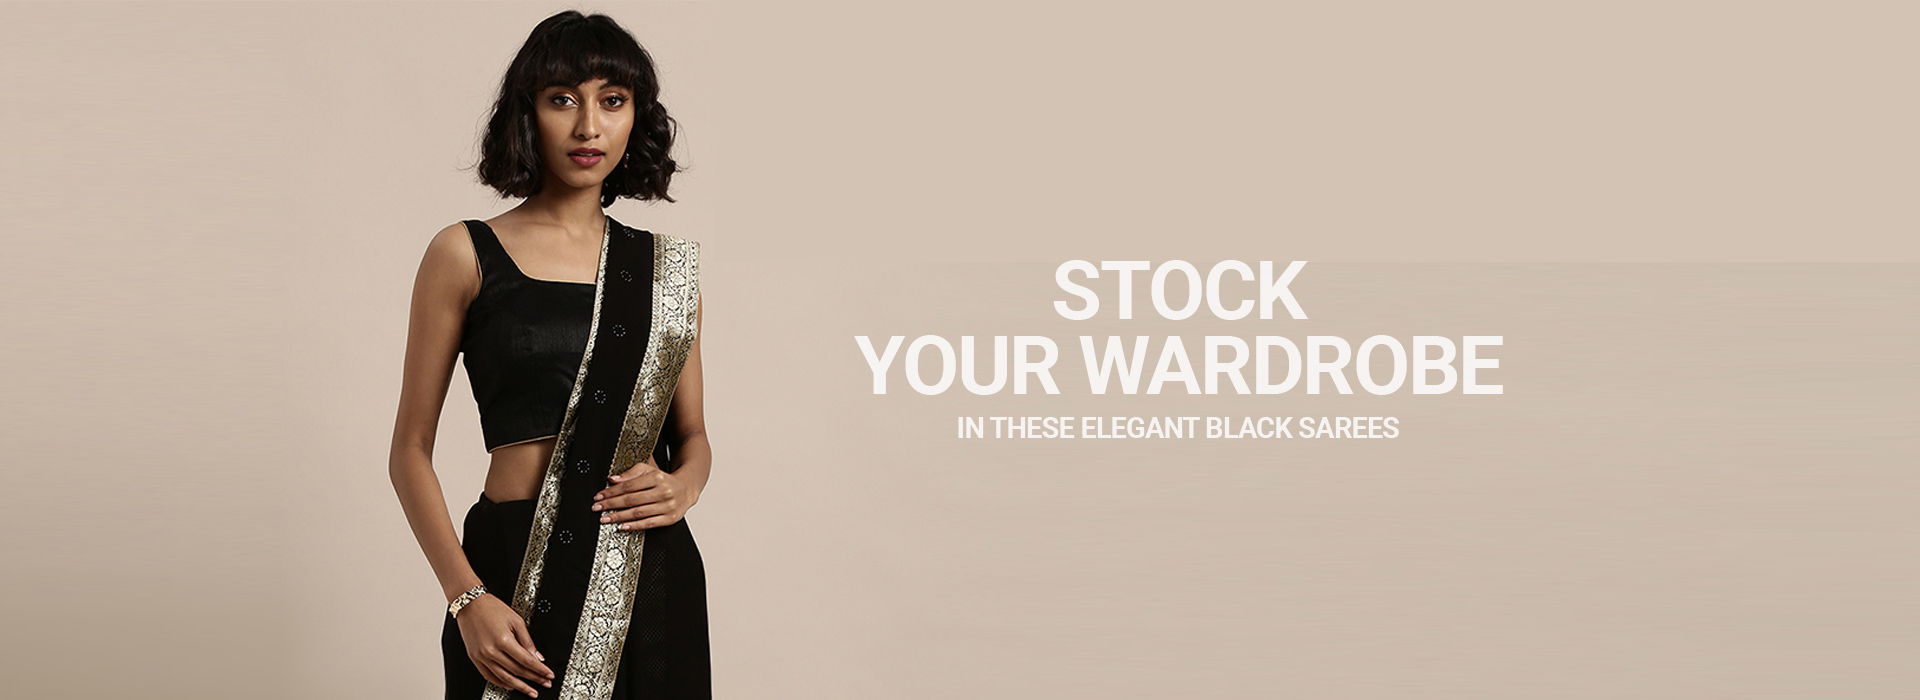 Stock Your Wardrobe in These Elegant Black Sarees